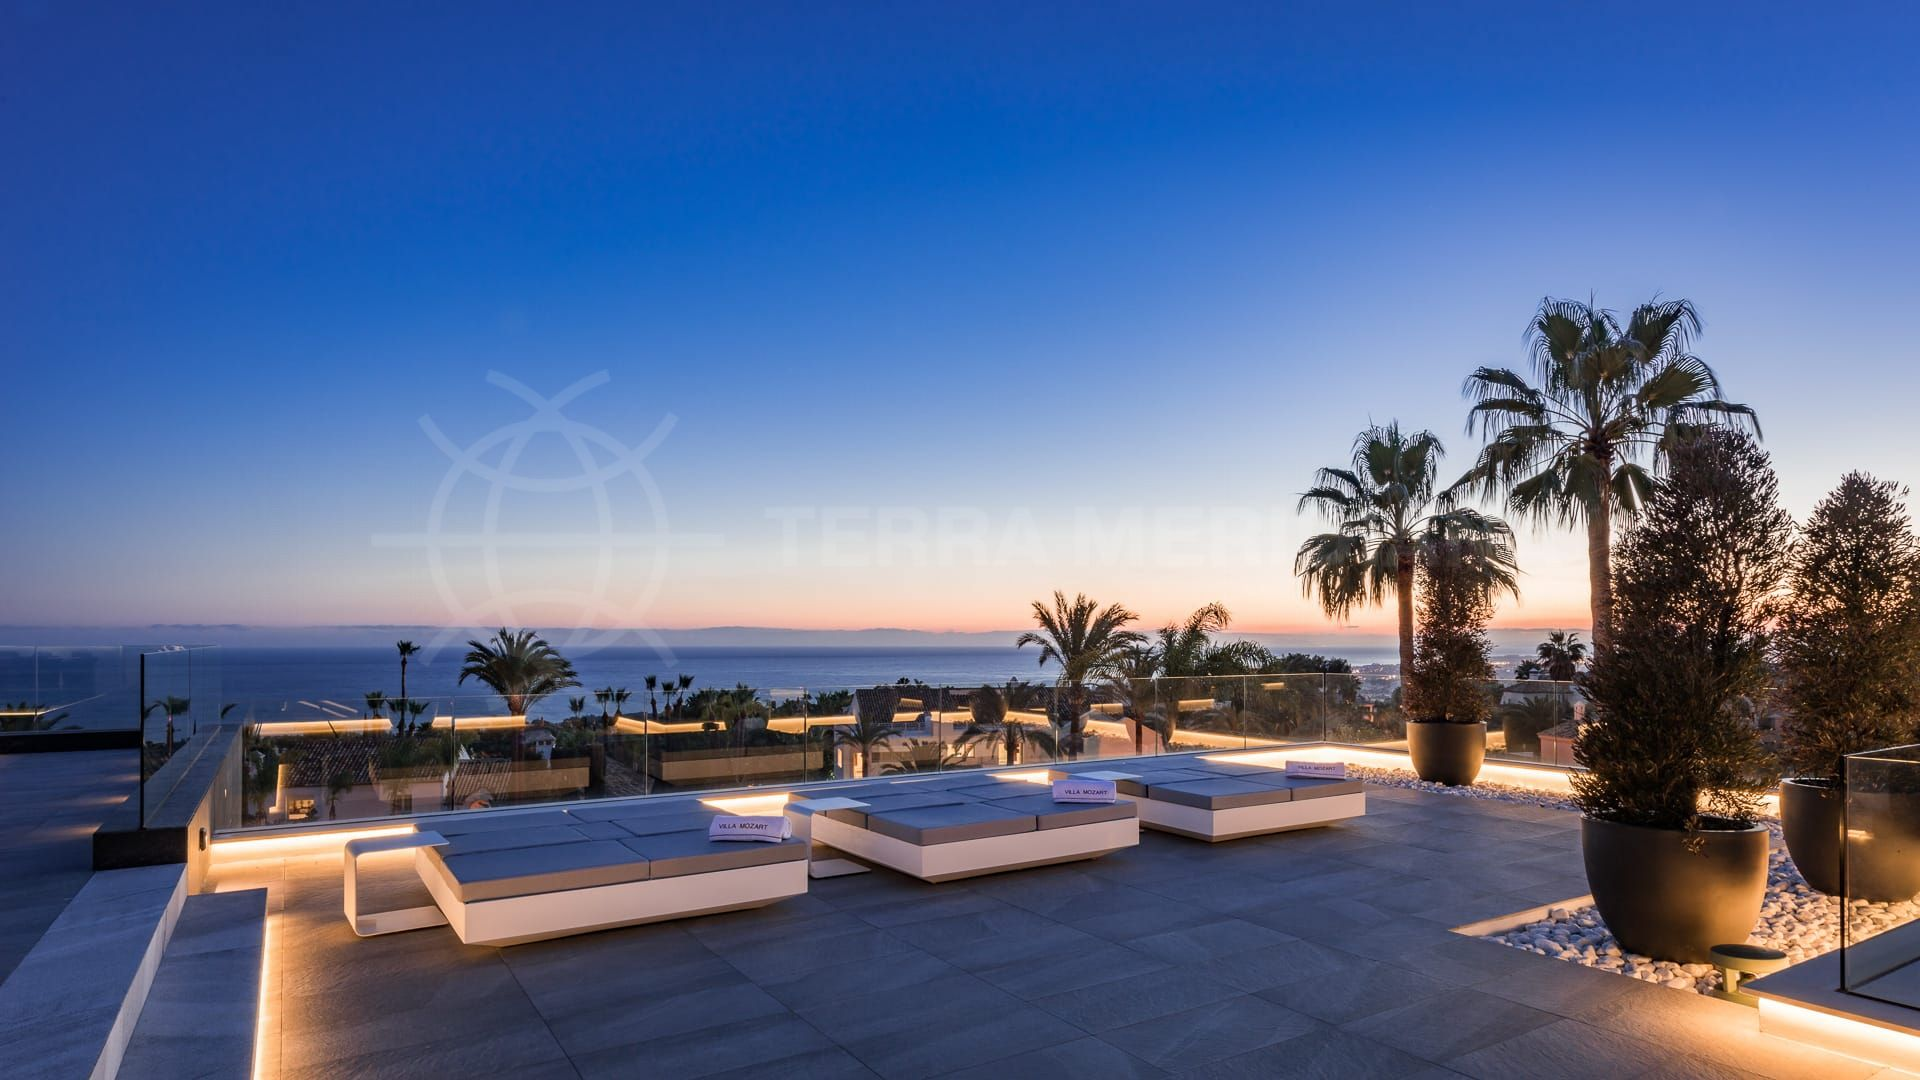 Benefits of Exclusivity with Terra Meridiana Real Estate in Costa del Sol